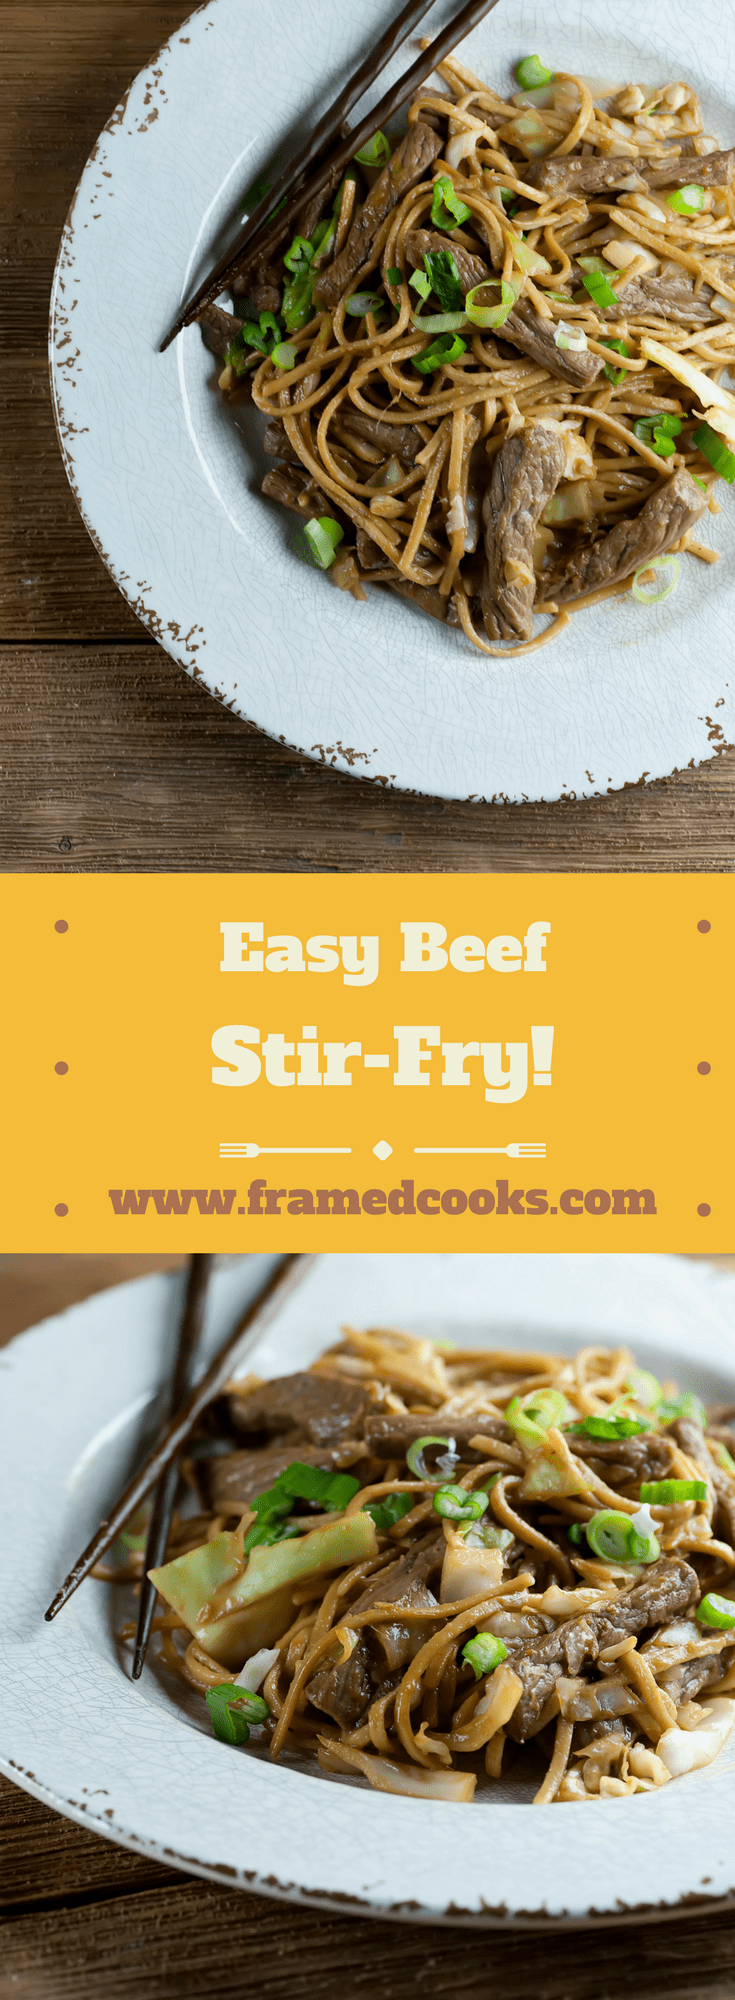 This recipe for easy beef stir-fry is light and quick and full of vegetables, and will make you forget all about that take-out menu at suppertime!